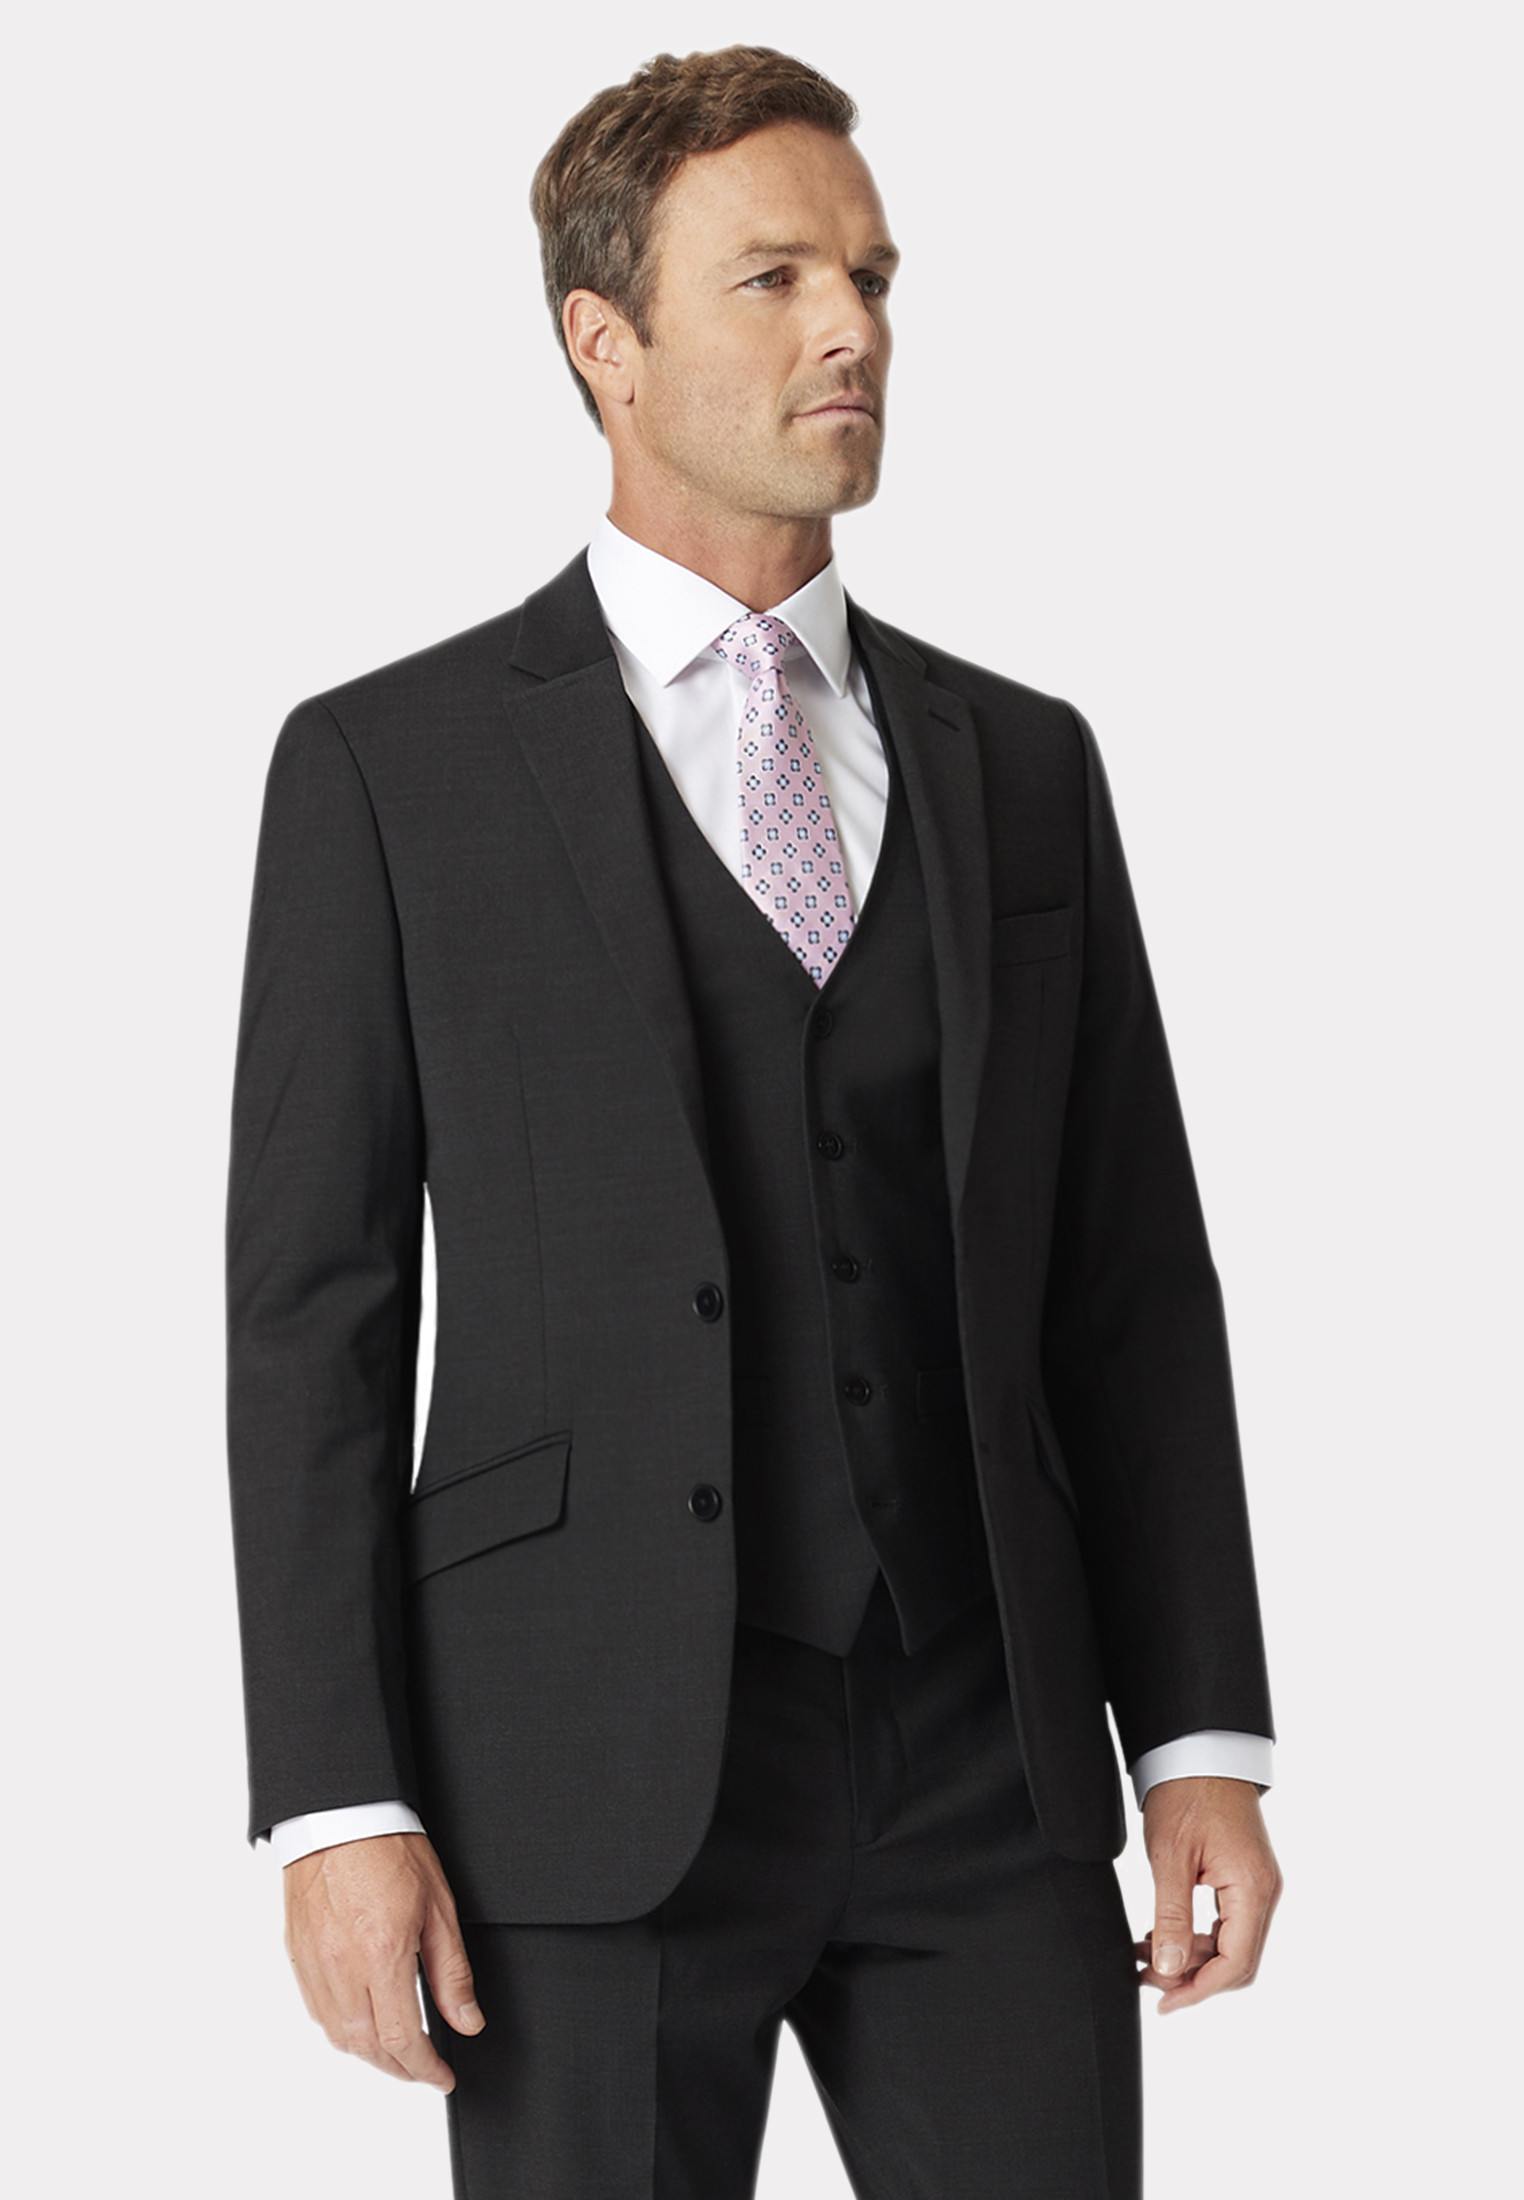 Avalino Charcoal Three Piece Travel Suit - Waistcoat Optional